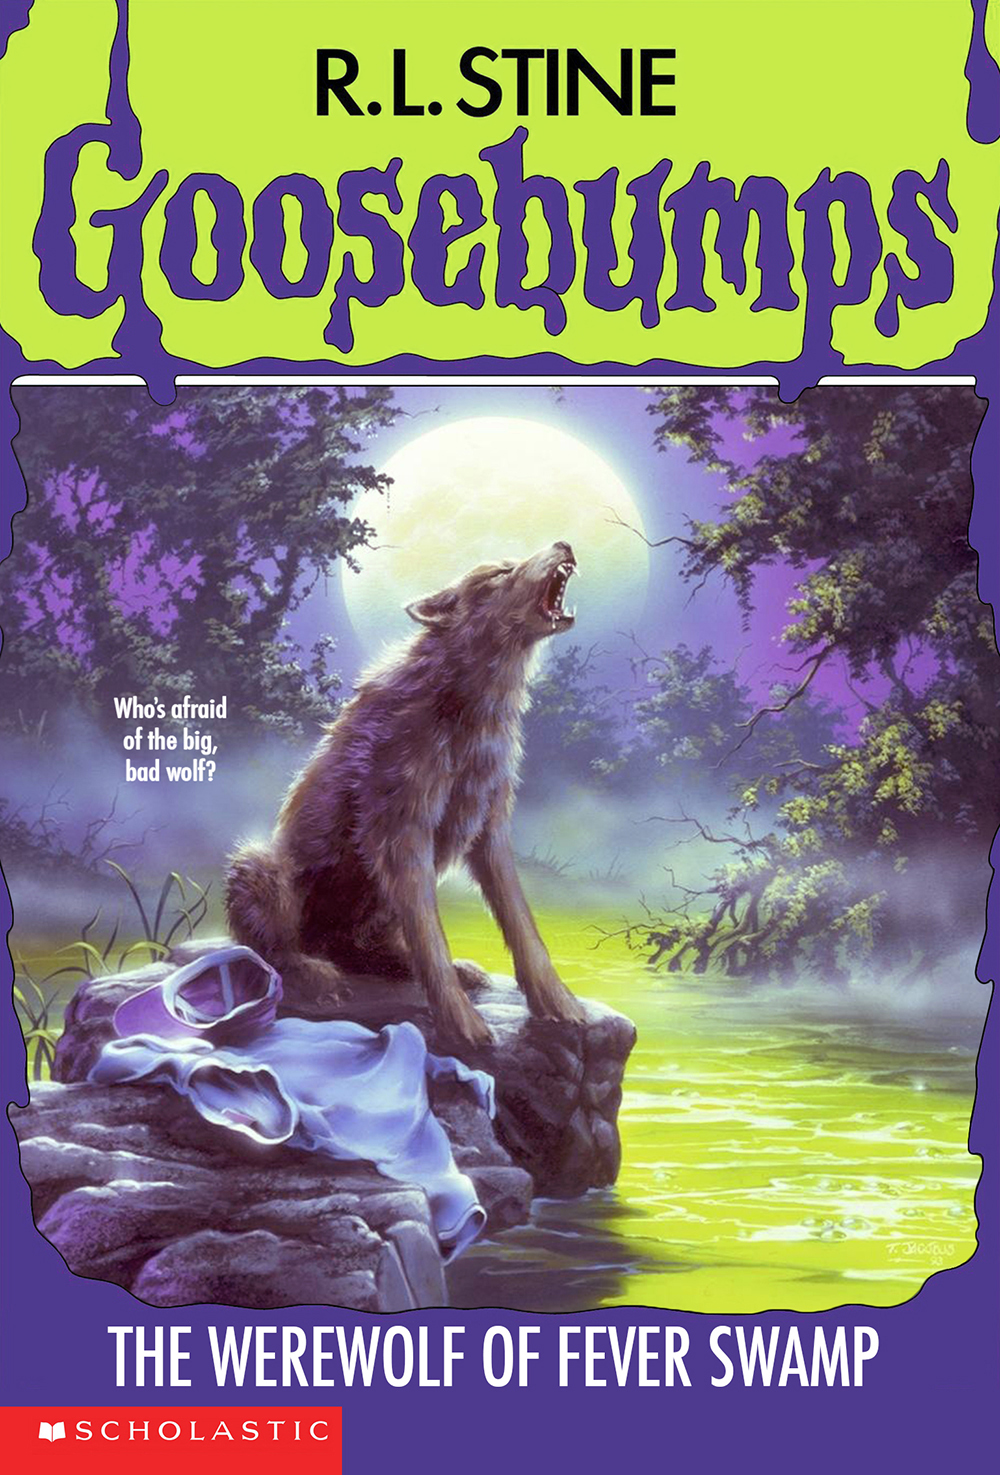 Image   The Werewolf Of Fever Swamp (Cover) | Goosebumps Wiki | FANDOM  Powered By Wikia Part 33